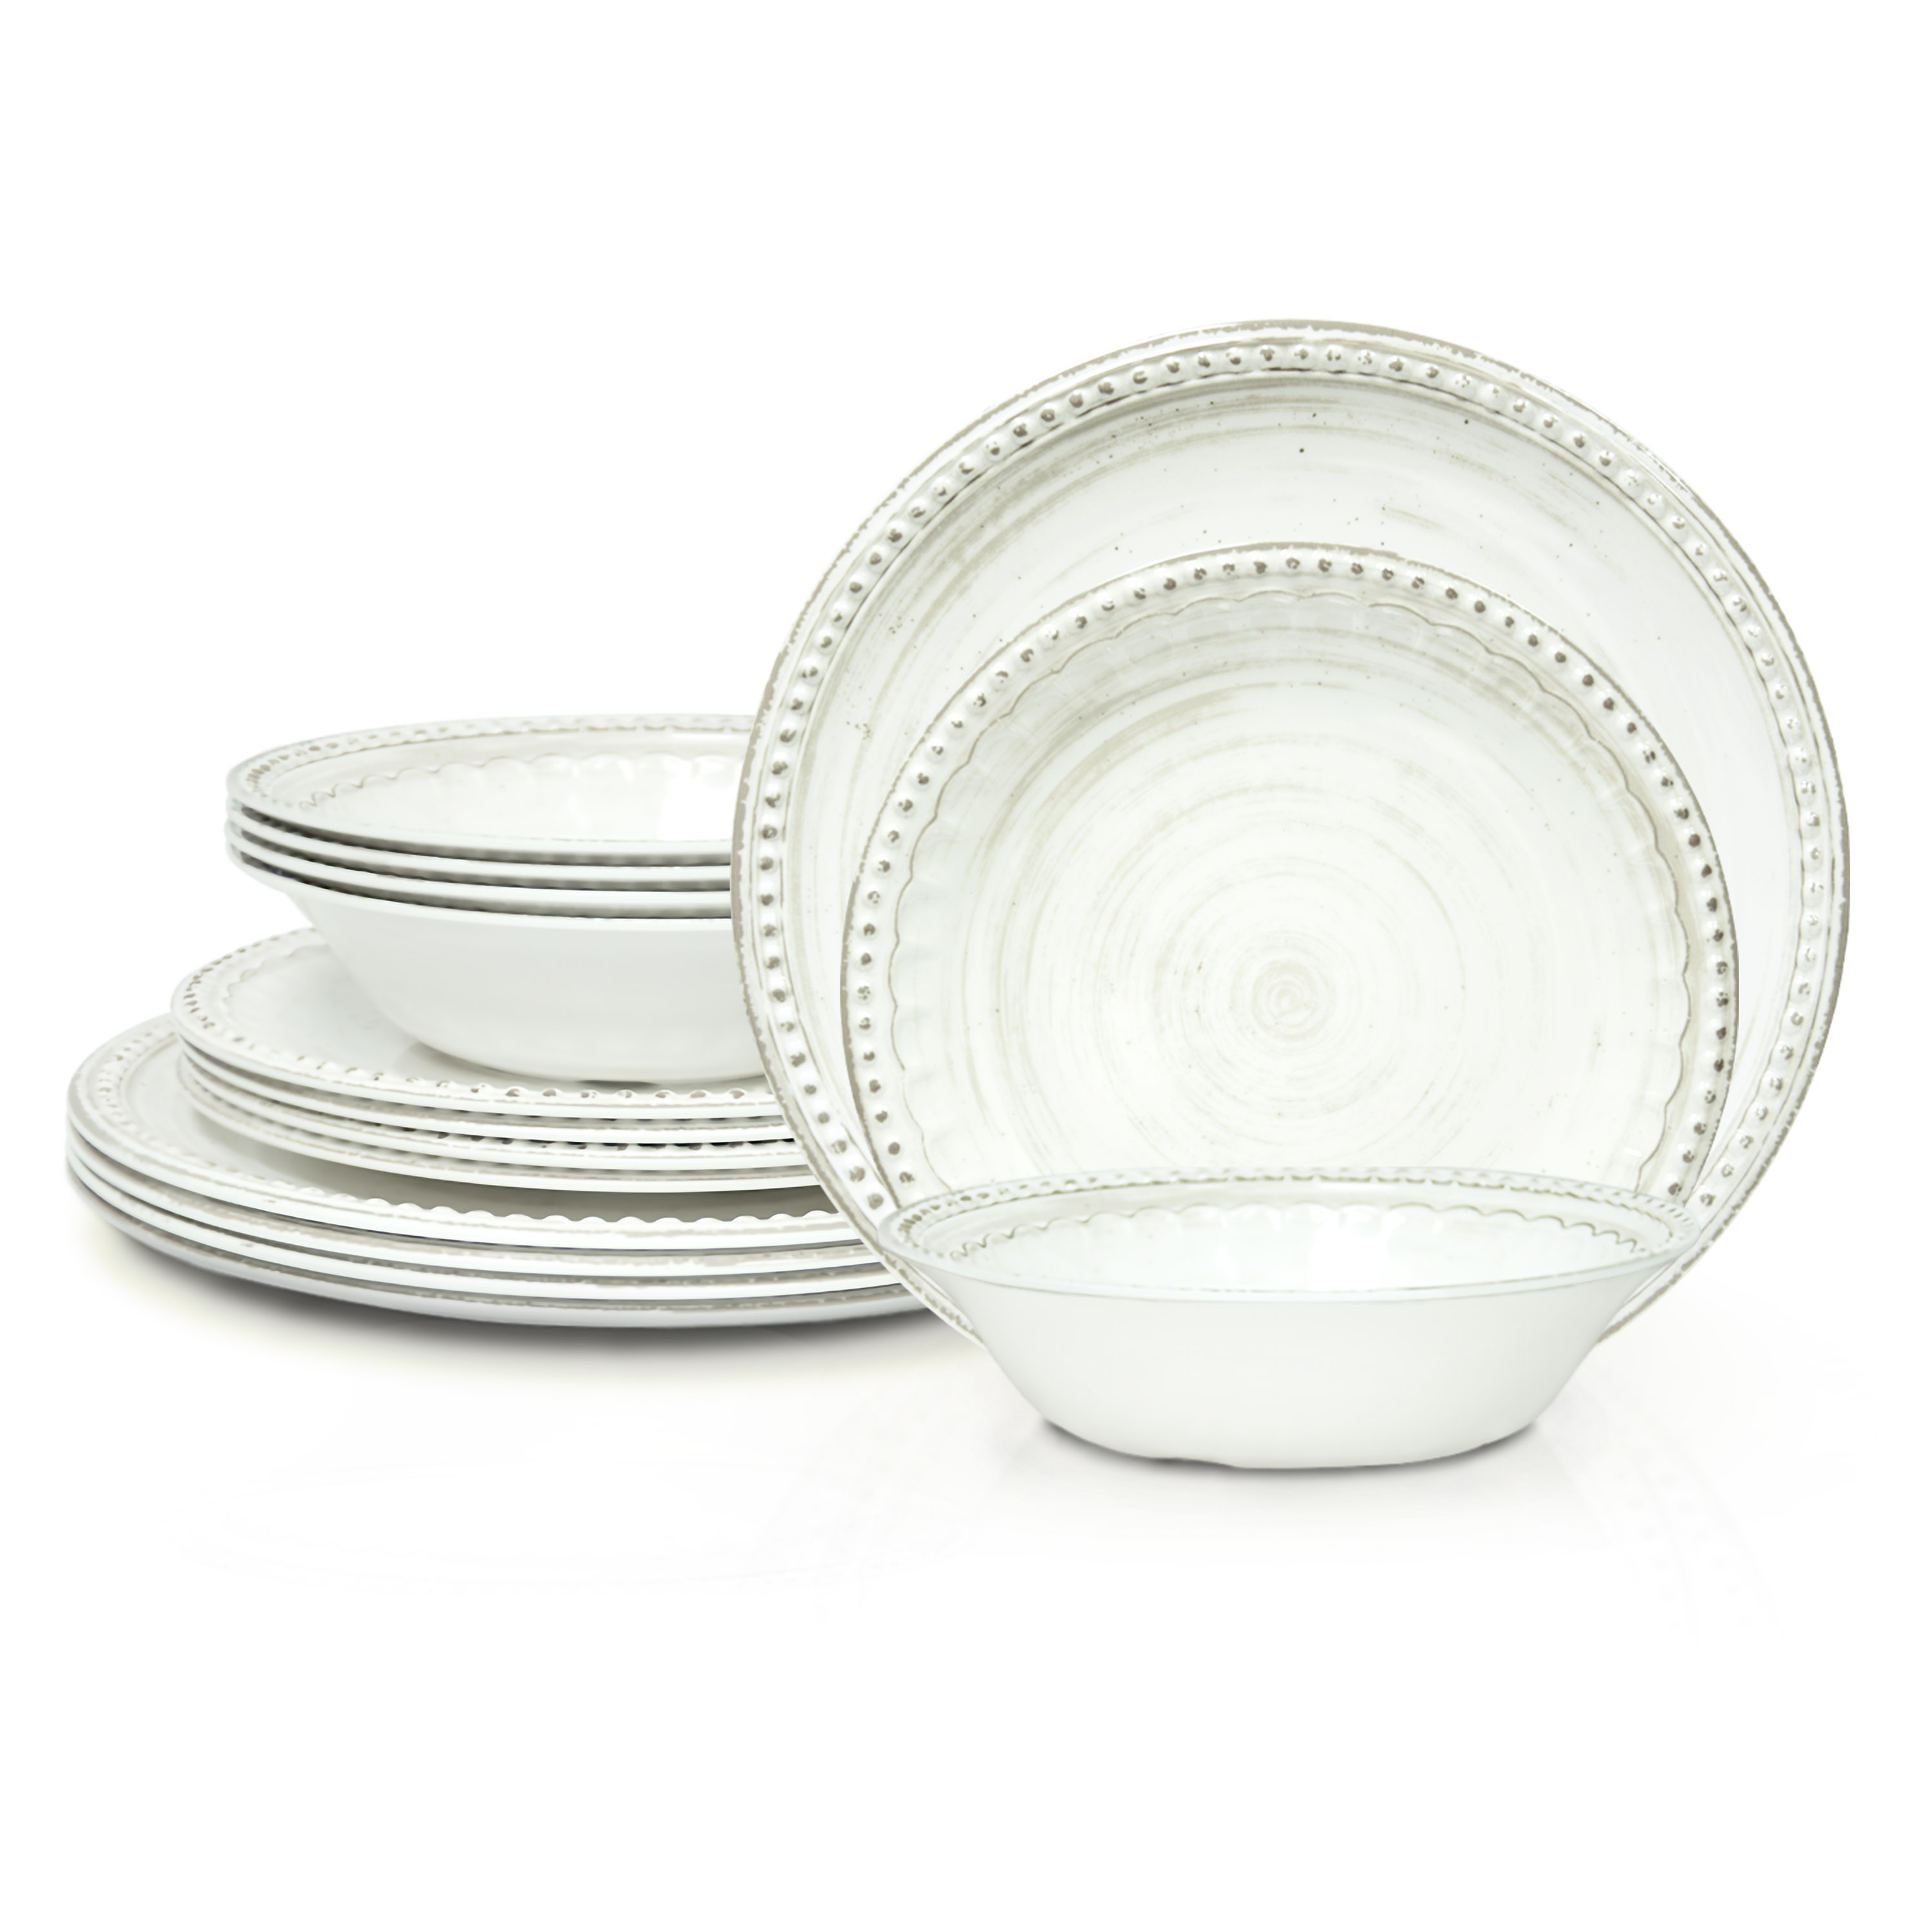 French Country Plate & Bowl Sets, White, 12-piece set